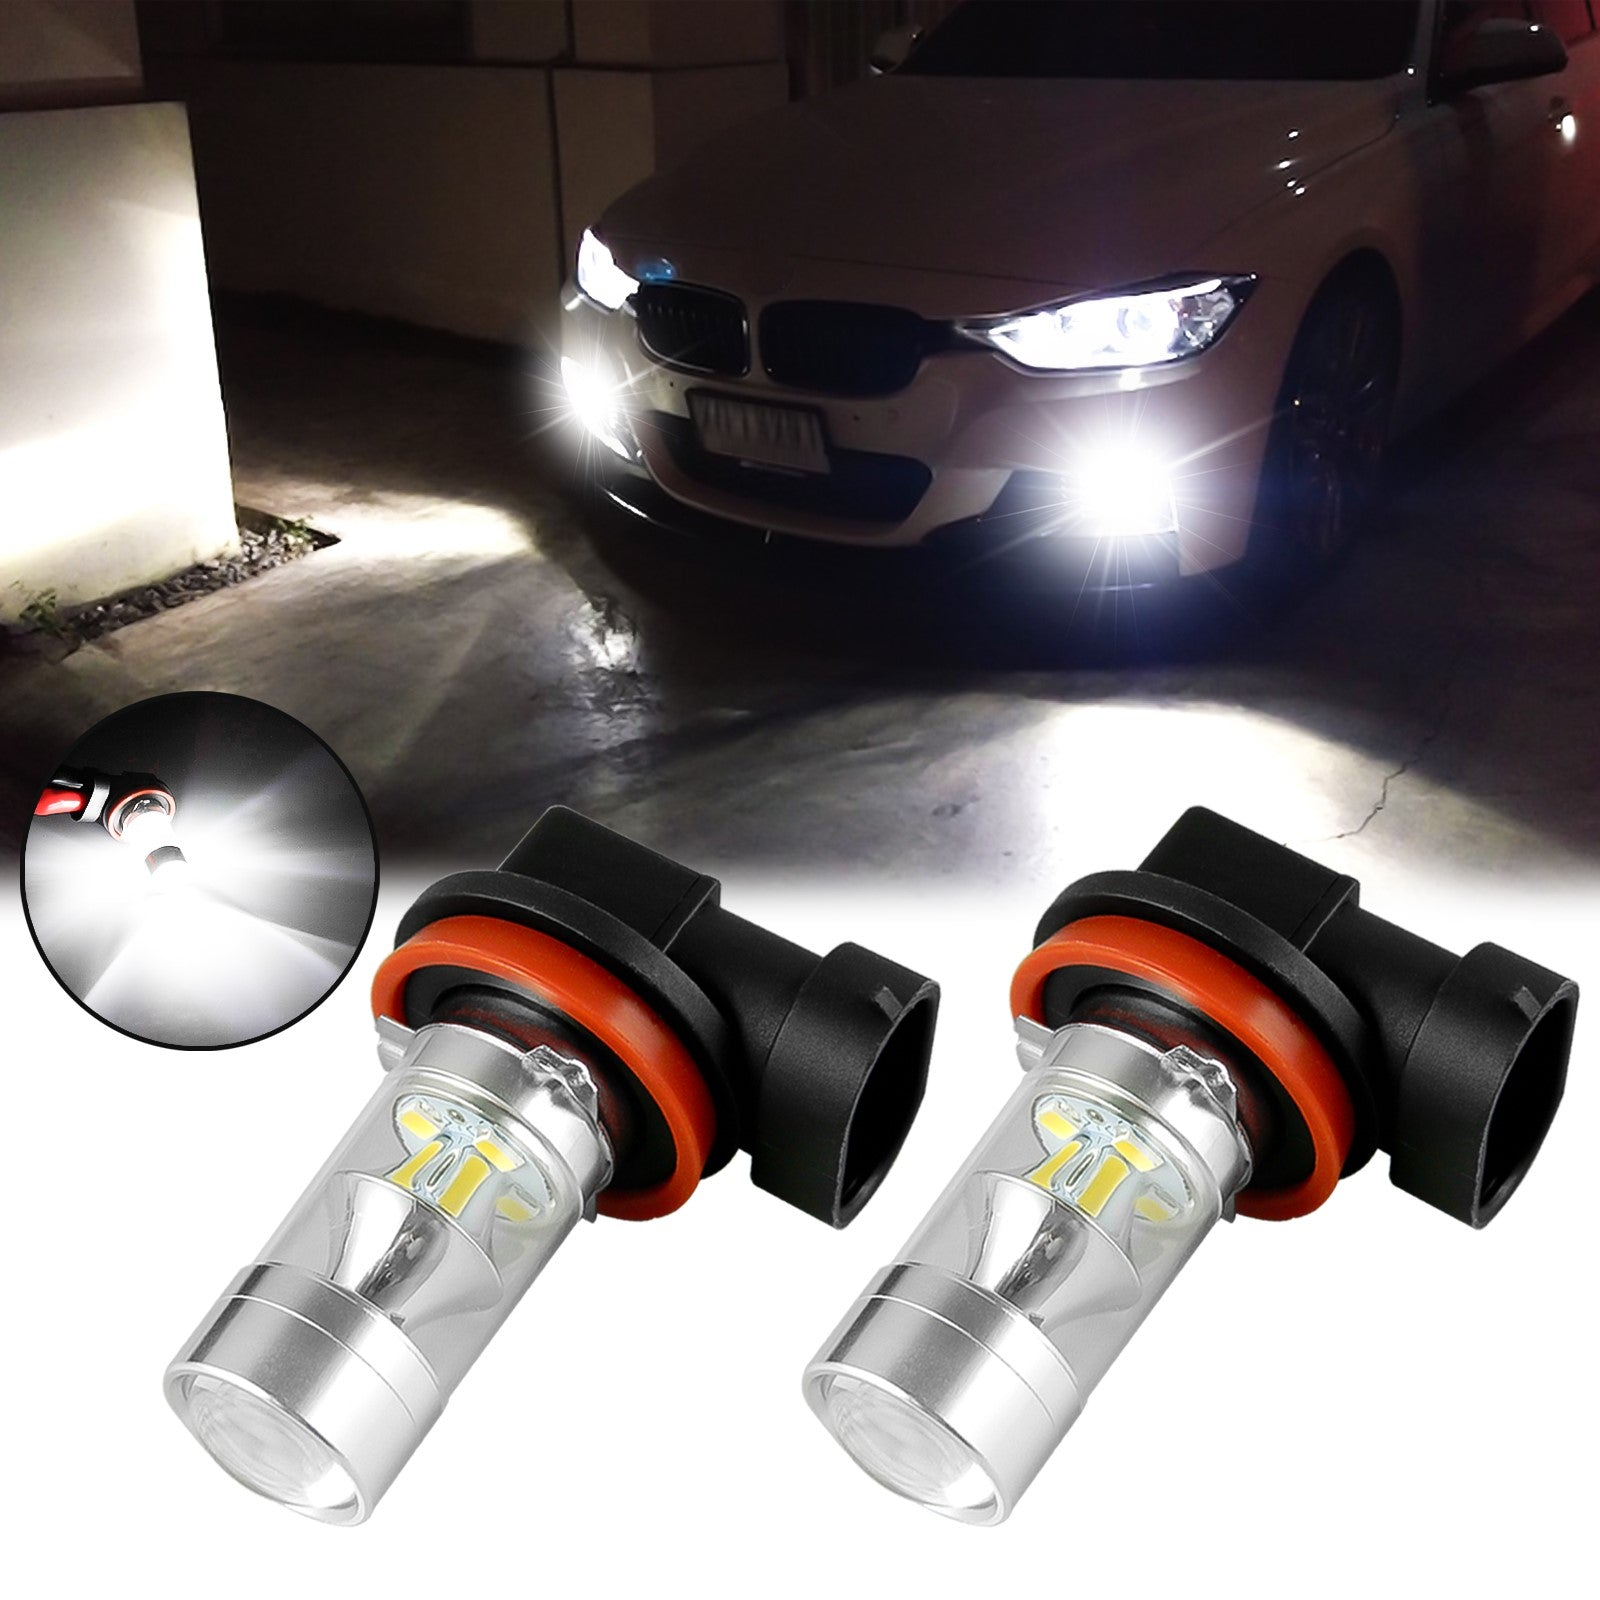 Pair LH RH Bumper Headlight Washer Cover Lid For BMW E90 E91 LCI 328i 323i 335i